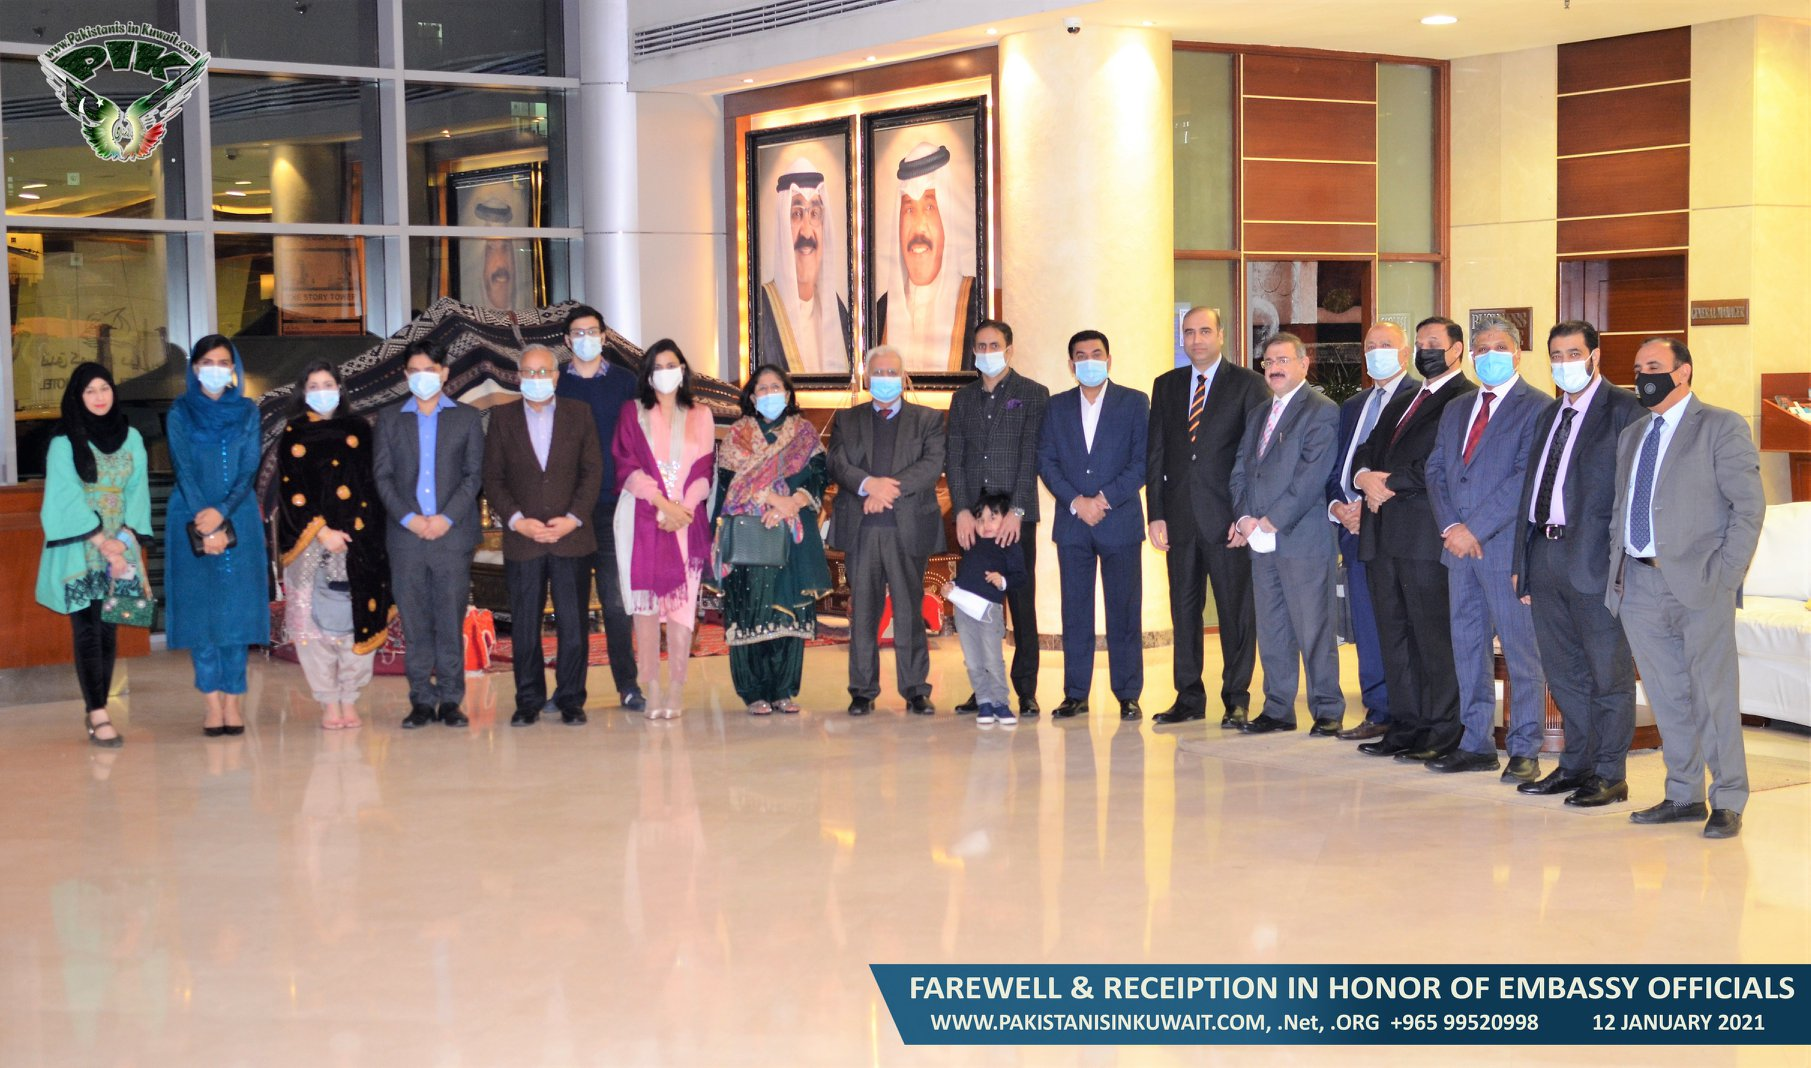 https://pakistanisinkuwait.com/images/farewell-12-Jan-2021.jpg